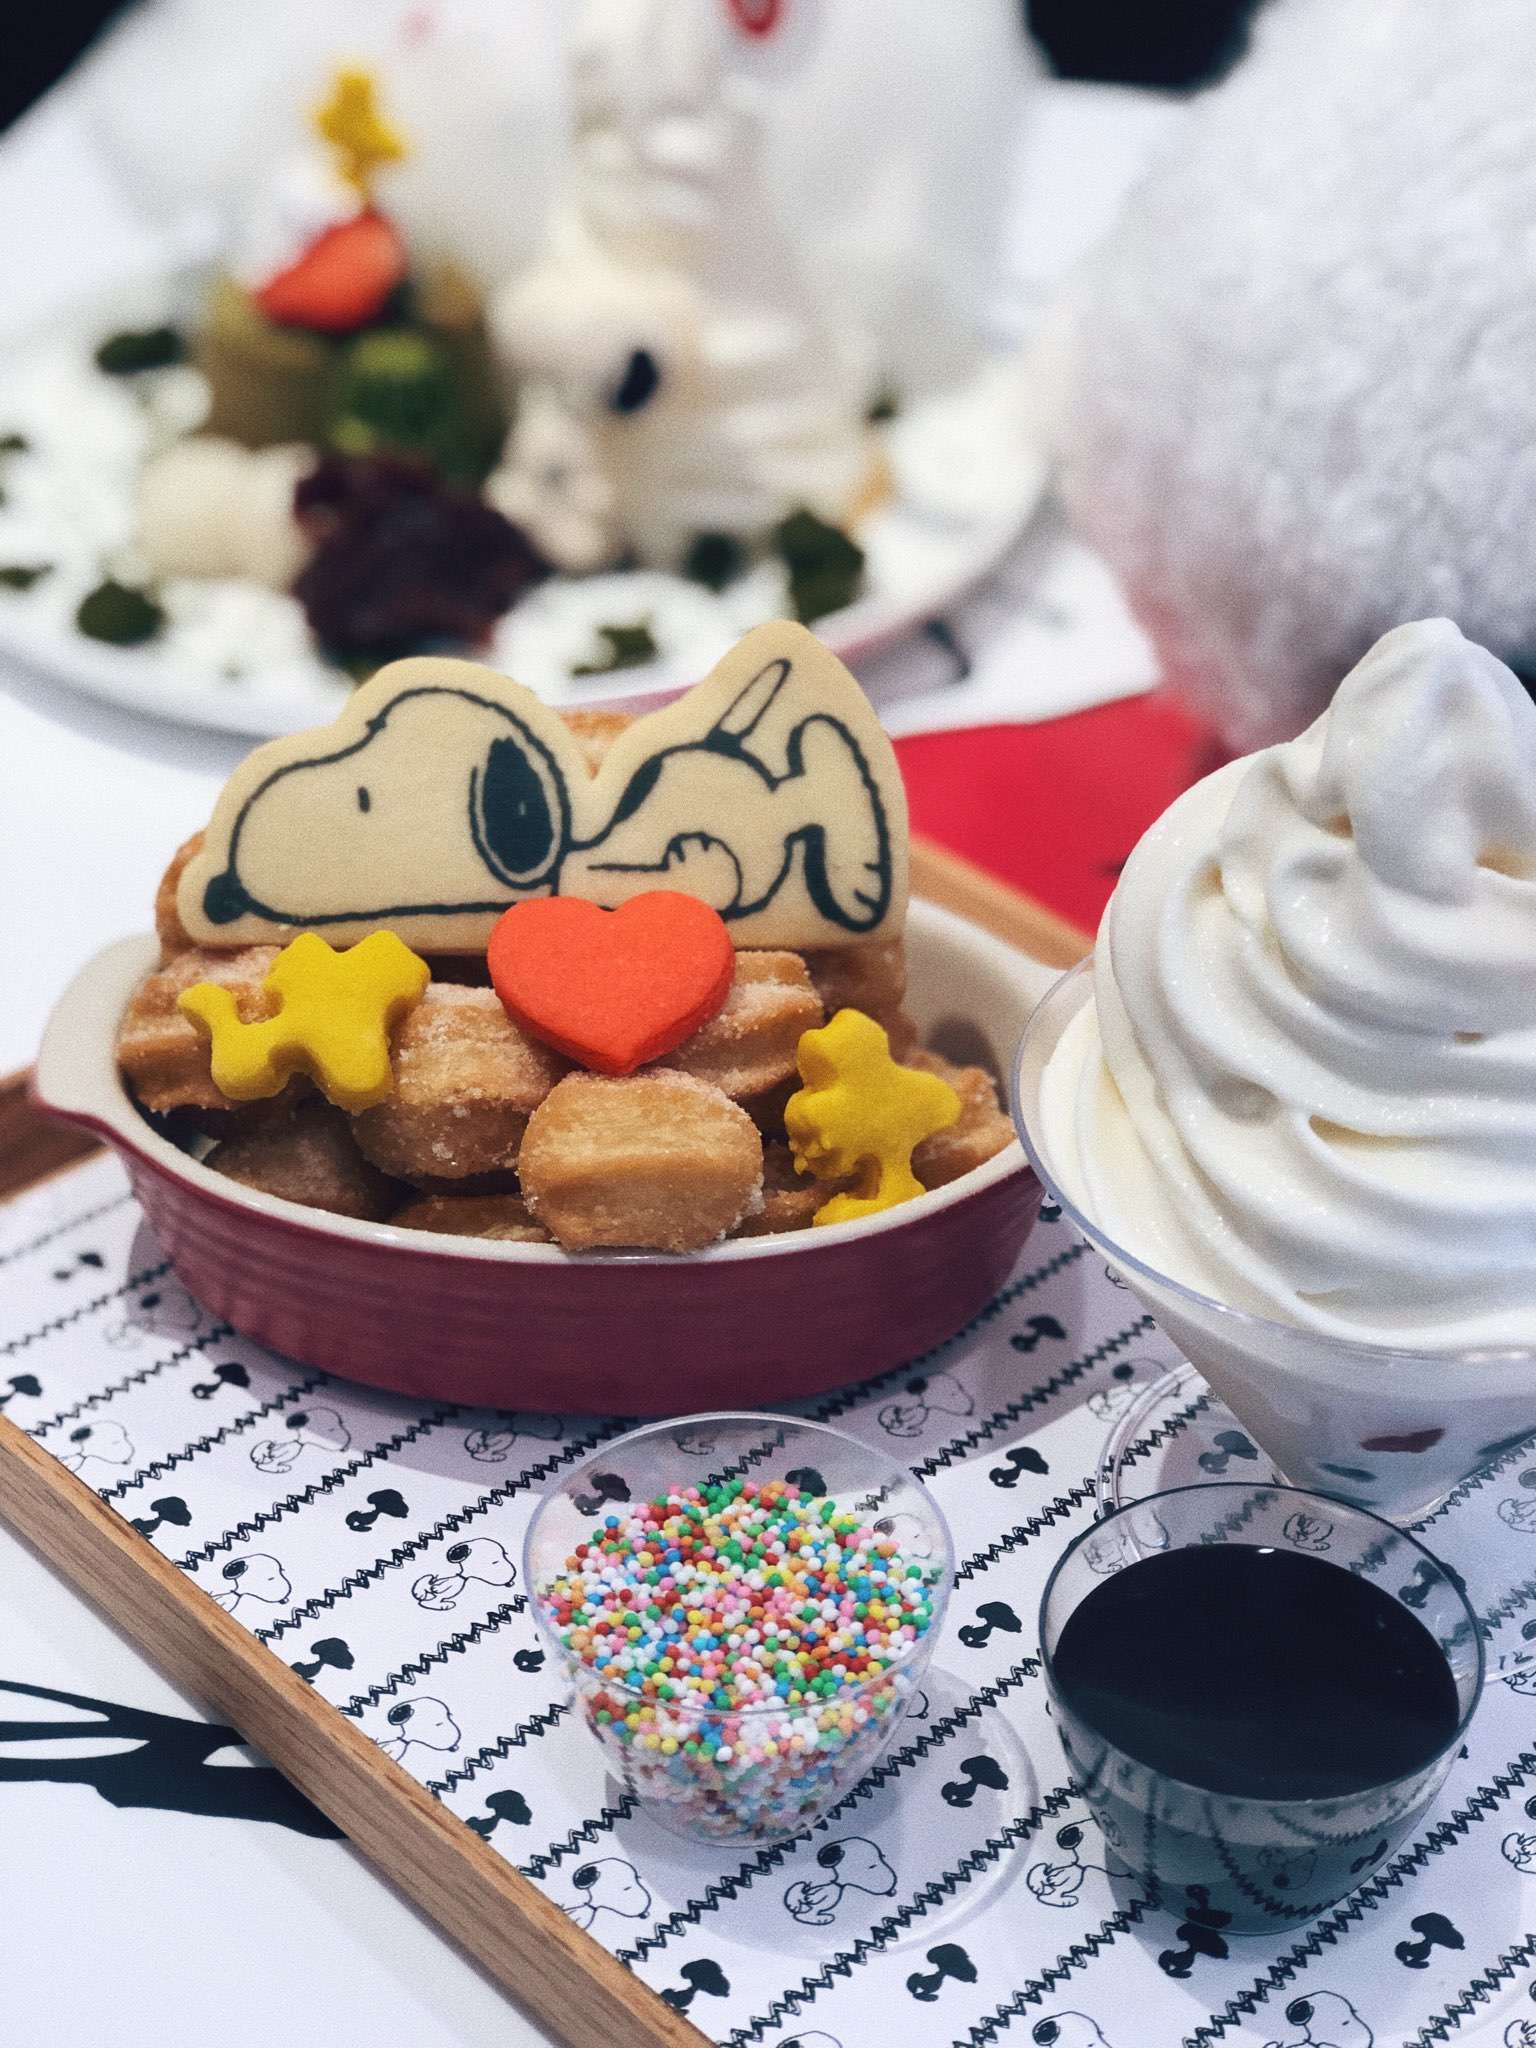 Chill Out With Snoopy Original Churro Balls With Fresh Fruits Parfait ($22.90)